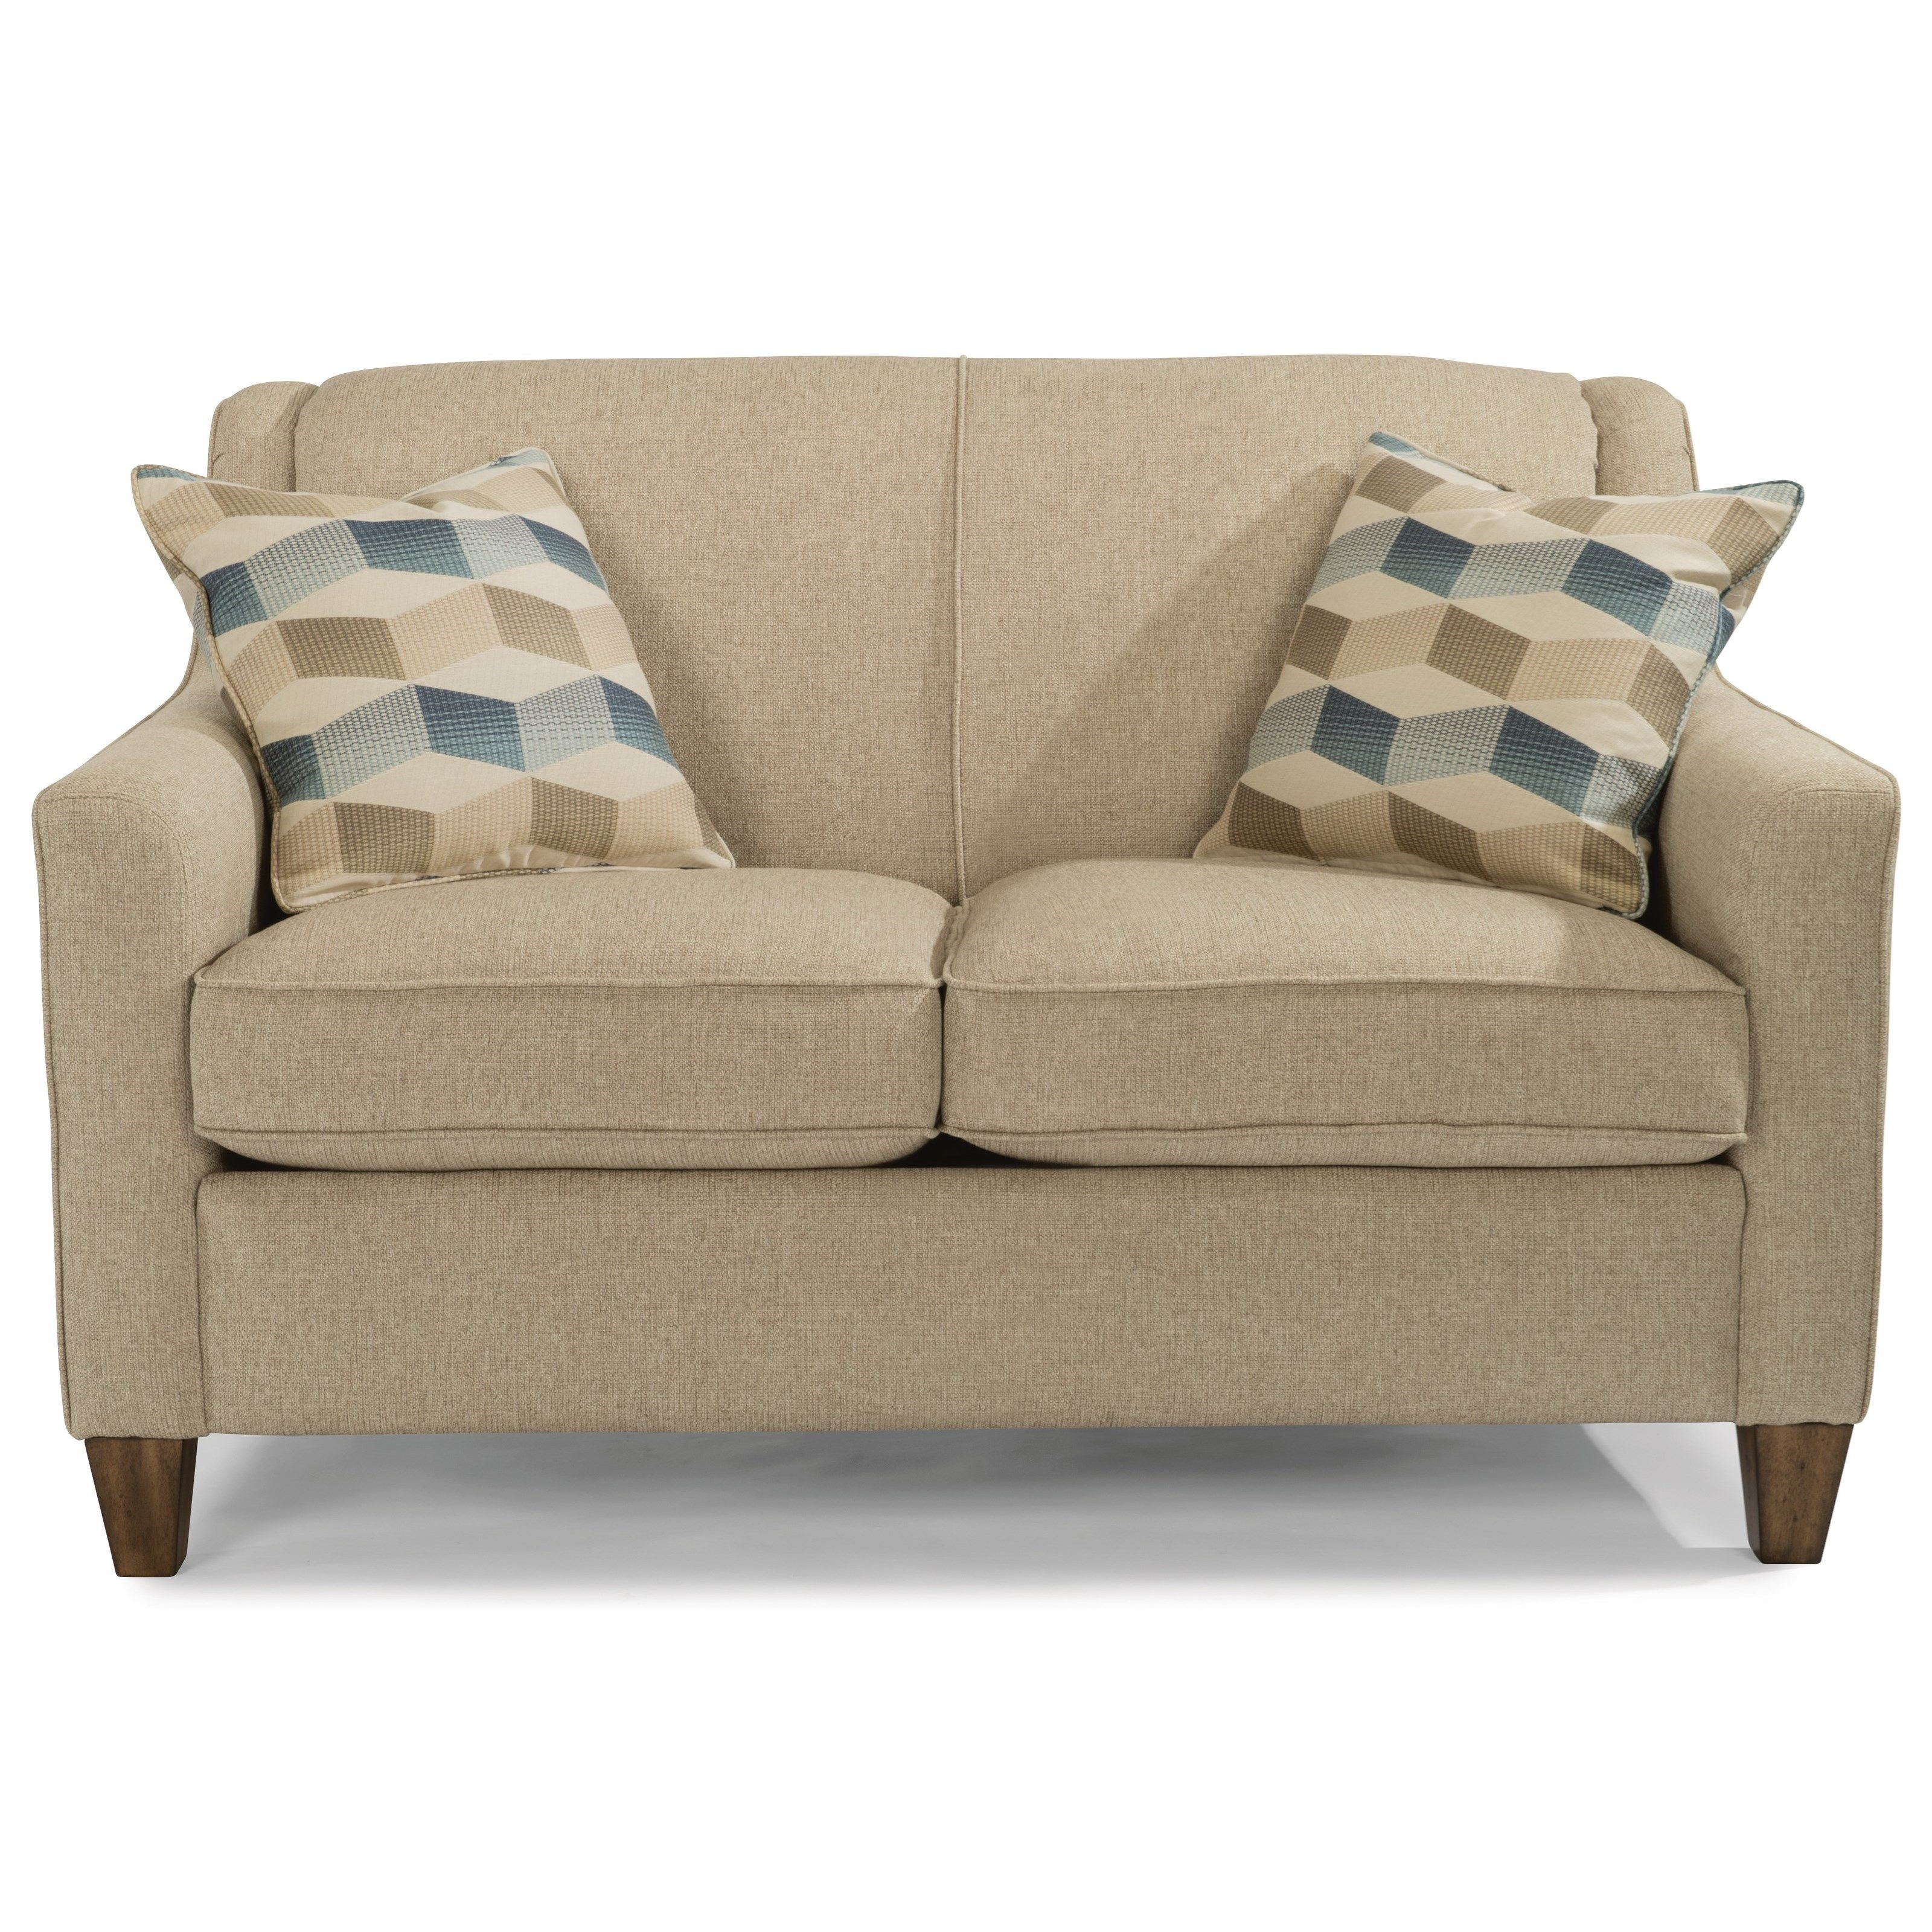 Holly Contemporary Loveseat With Welt Cording By Flexsteel